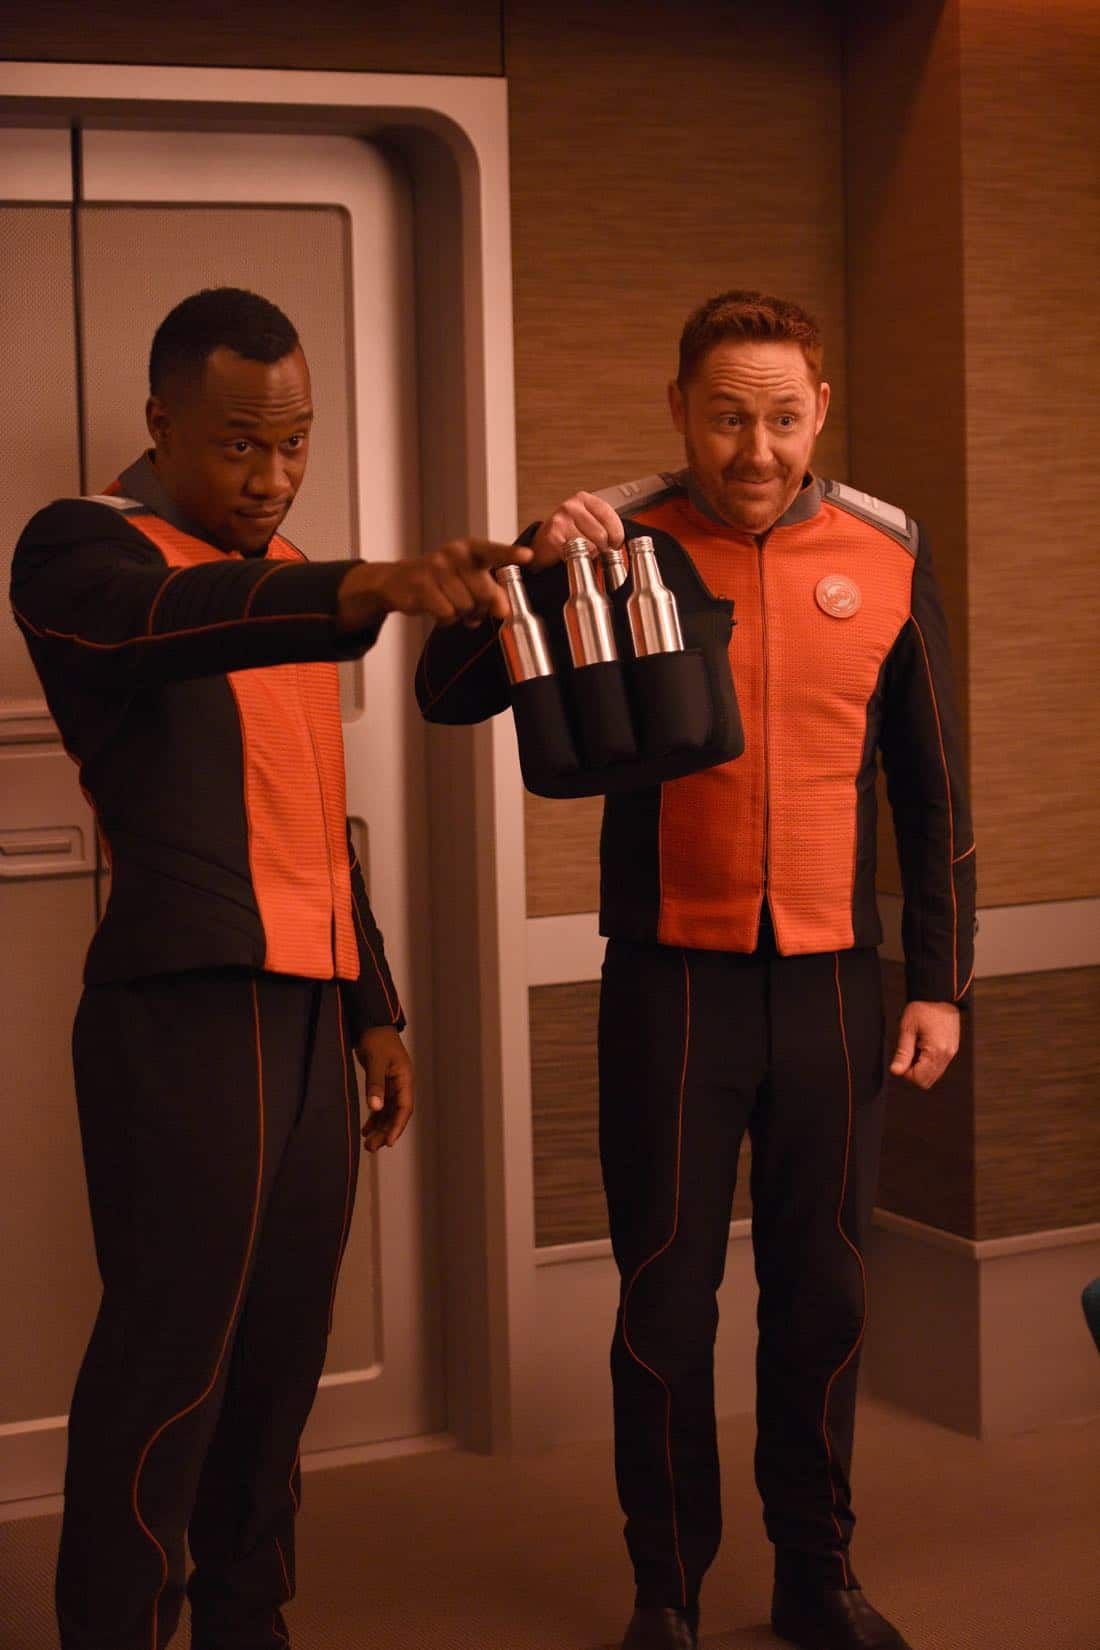 """THE ORVILLE: L-R: J Lee and Scott Grimes in the """"About a Girl"""" episode of THE ORVILLE airing Thursday, Sept. 21 (9:00-10:00 PM ET/PT) on FOX. ©2017 Fox Broadcasting Co. Cr: Jordin Althaus/FOX"""